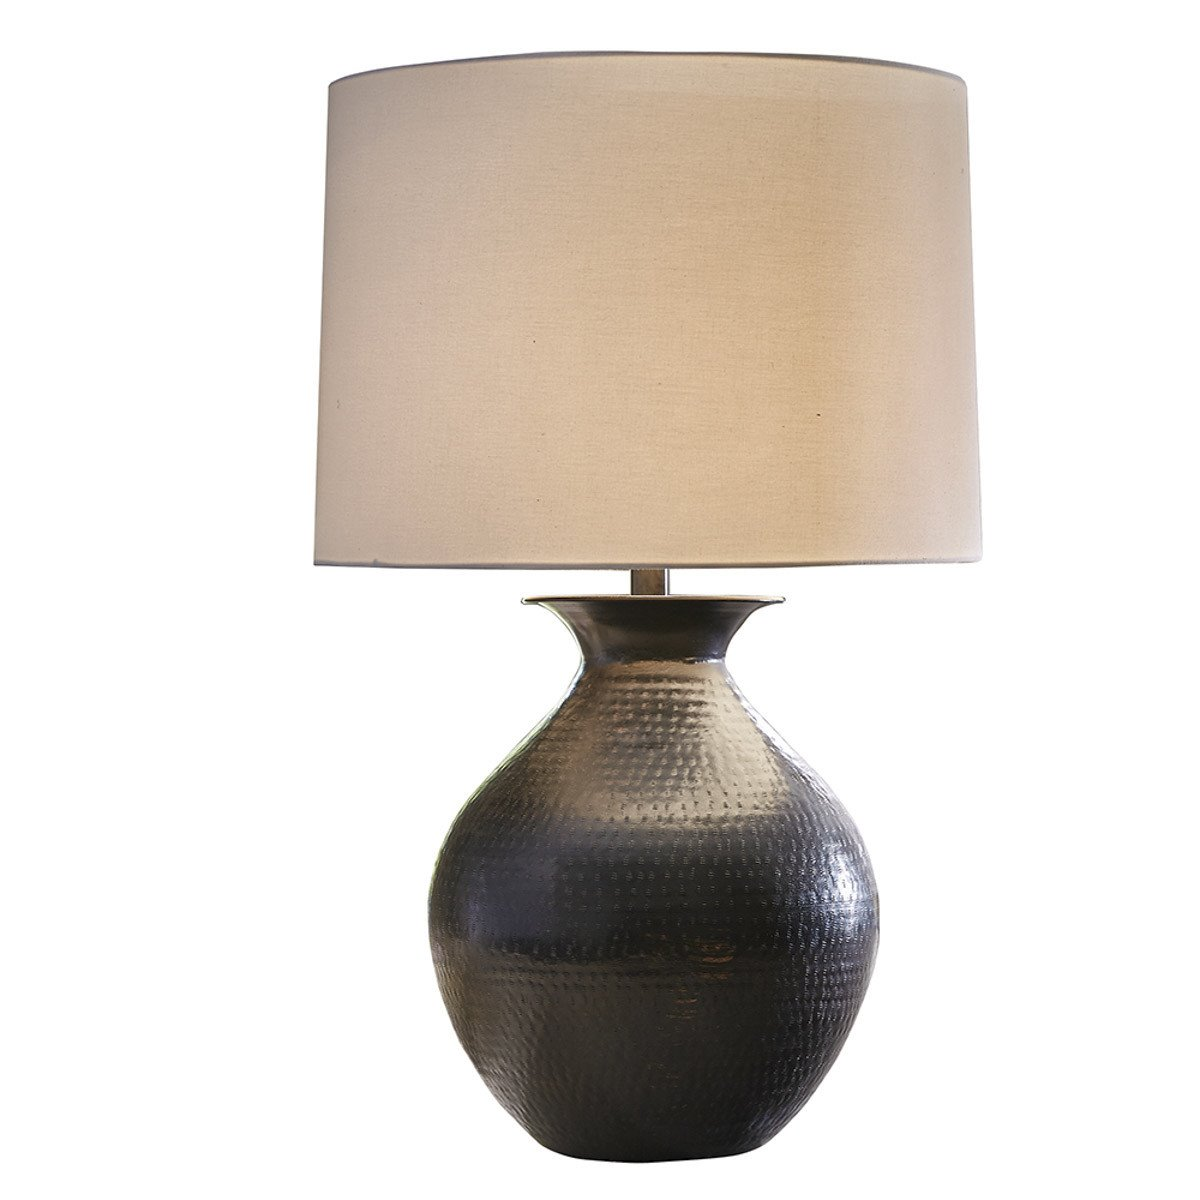 Hammered Metal Table Lamp with Shade